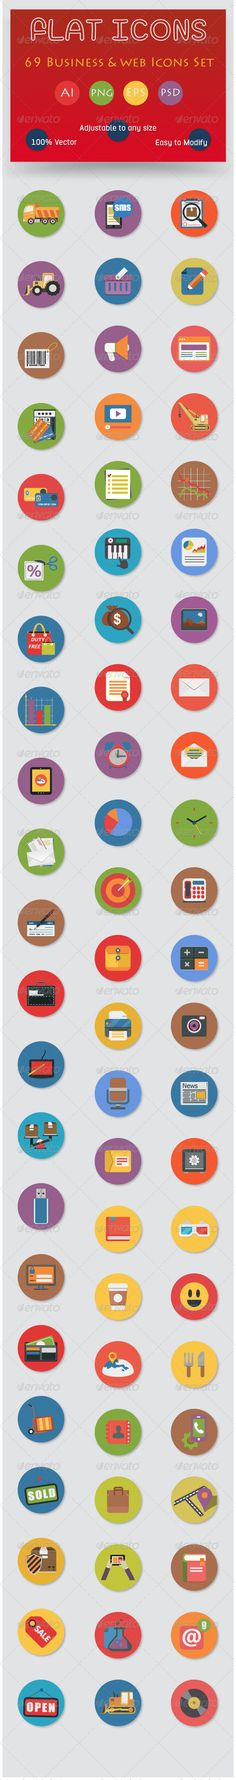 69 Flat Icons Set - Business and Web Services Icon  	analytics, application, business, business icons, cloud, coding, communication, computer, concept, connection, data, flat icons, icon, interface, internet, management, mobile, network, office icons, page, research, search engine, seo, server, service, vector flat icons, web, web icons, webpage, wifi